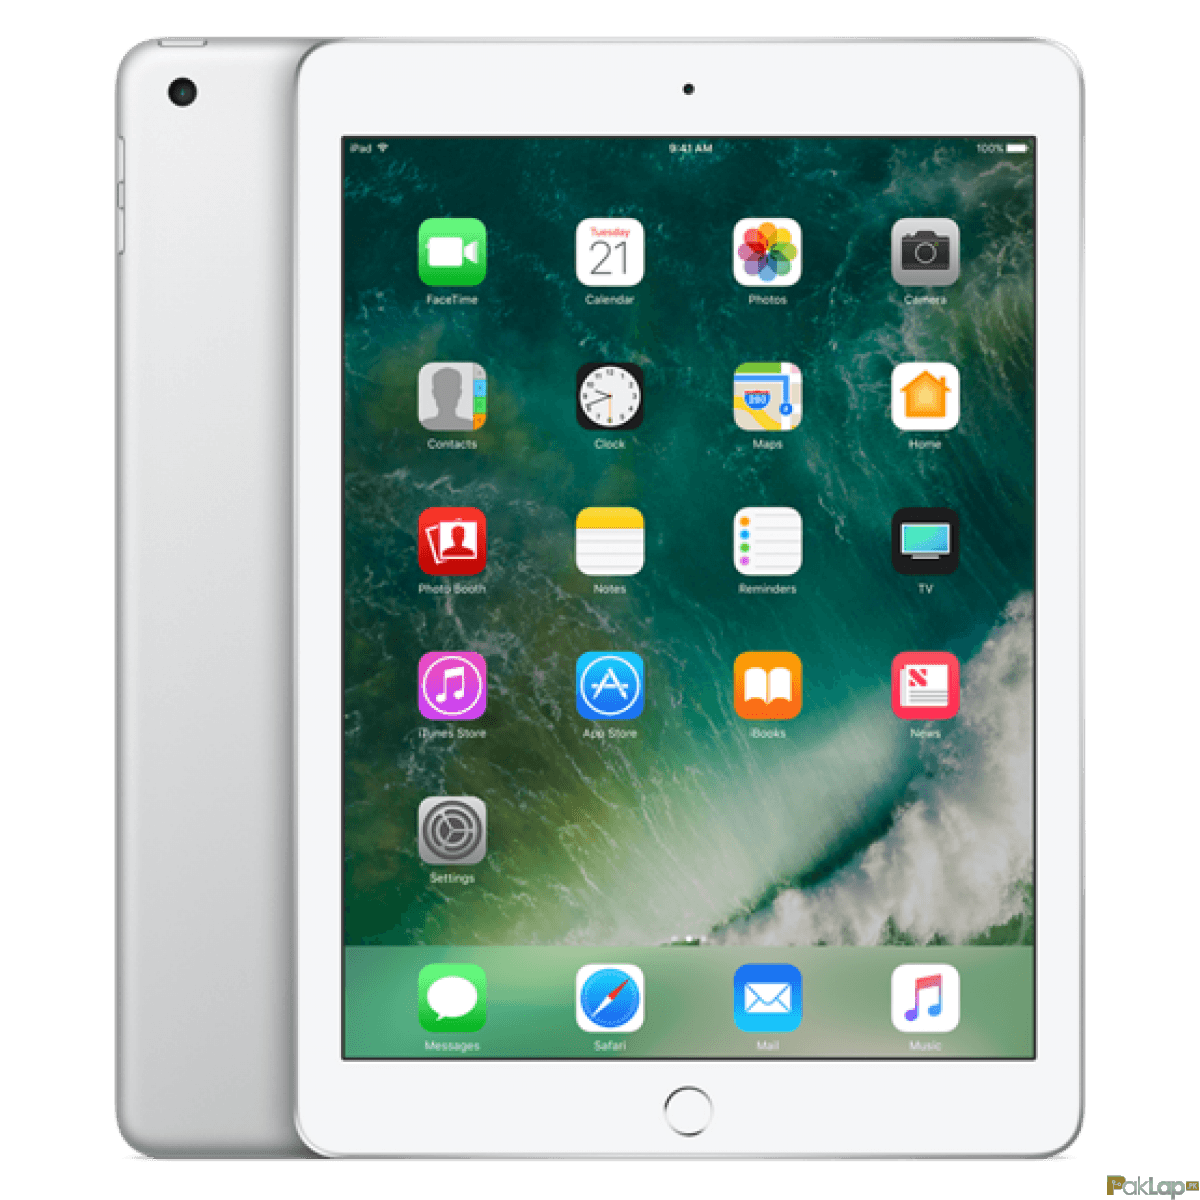 4g Tablets Prices In Pakistan Buy Hp Slate 7 Voicetab 16 Gb 3g Silver Apple Ipad 5th Generation 97